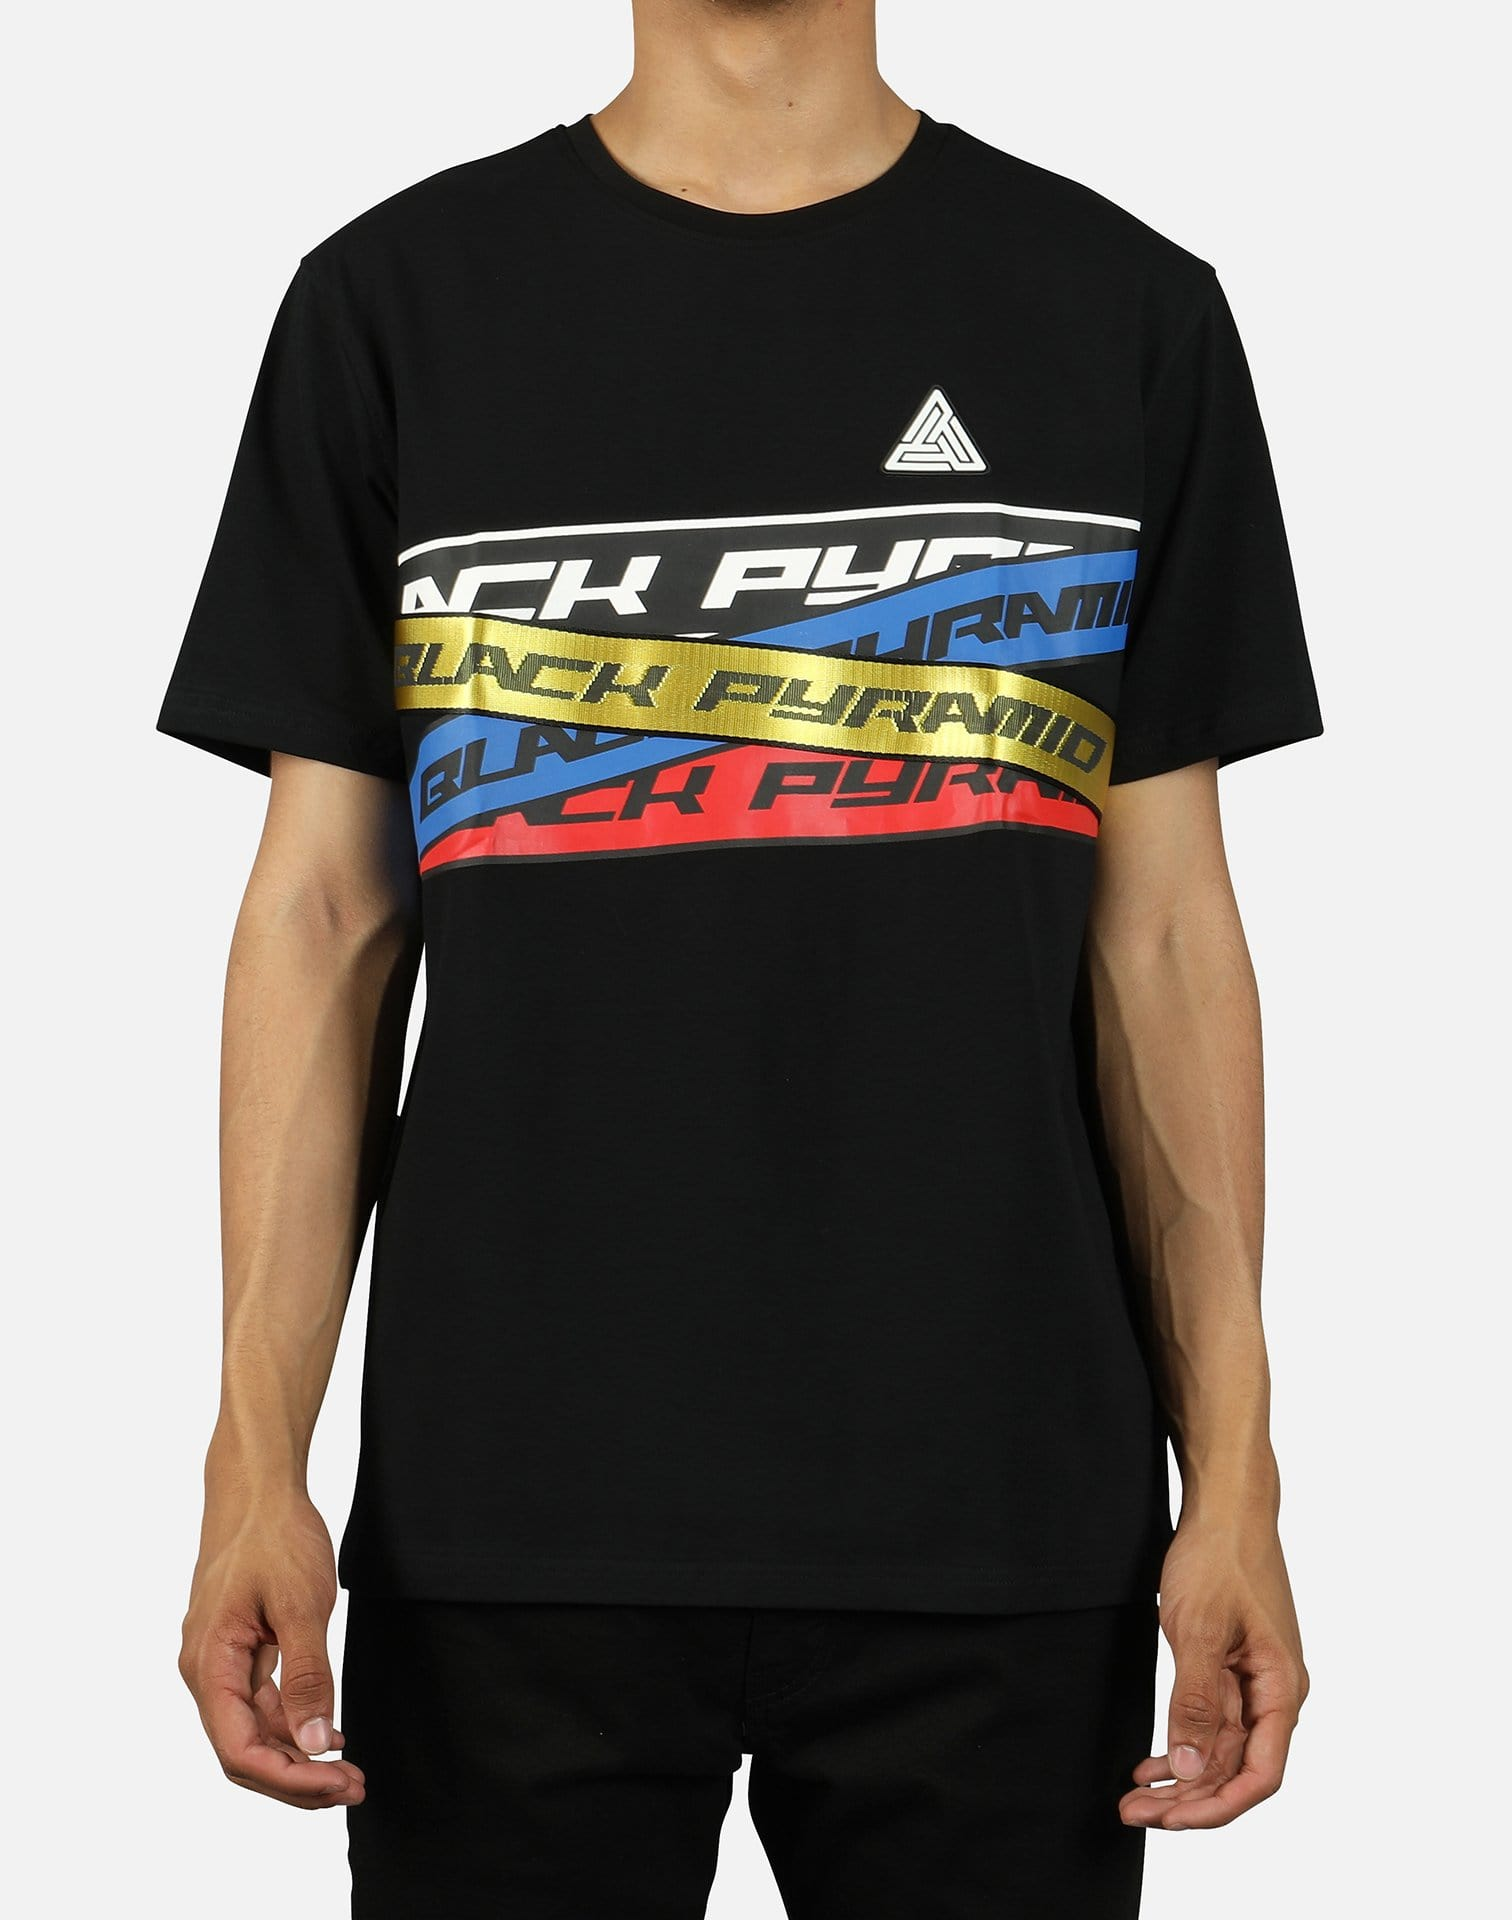 Black Pyramid Men's Overlapping Tape Tee